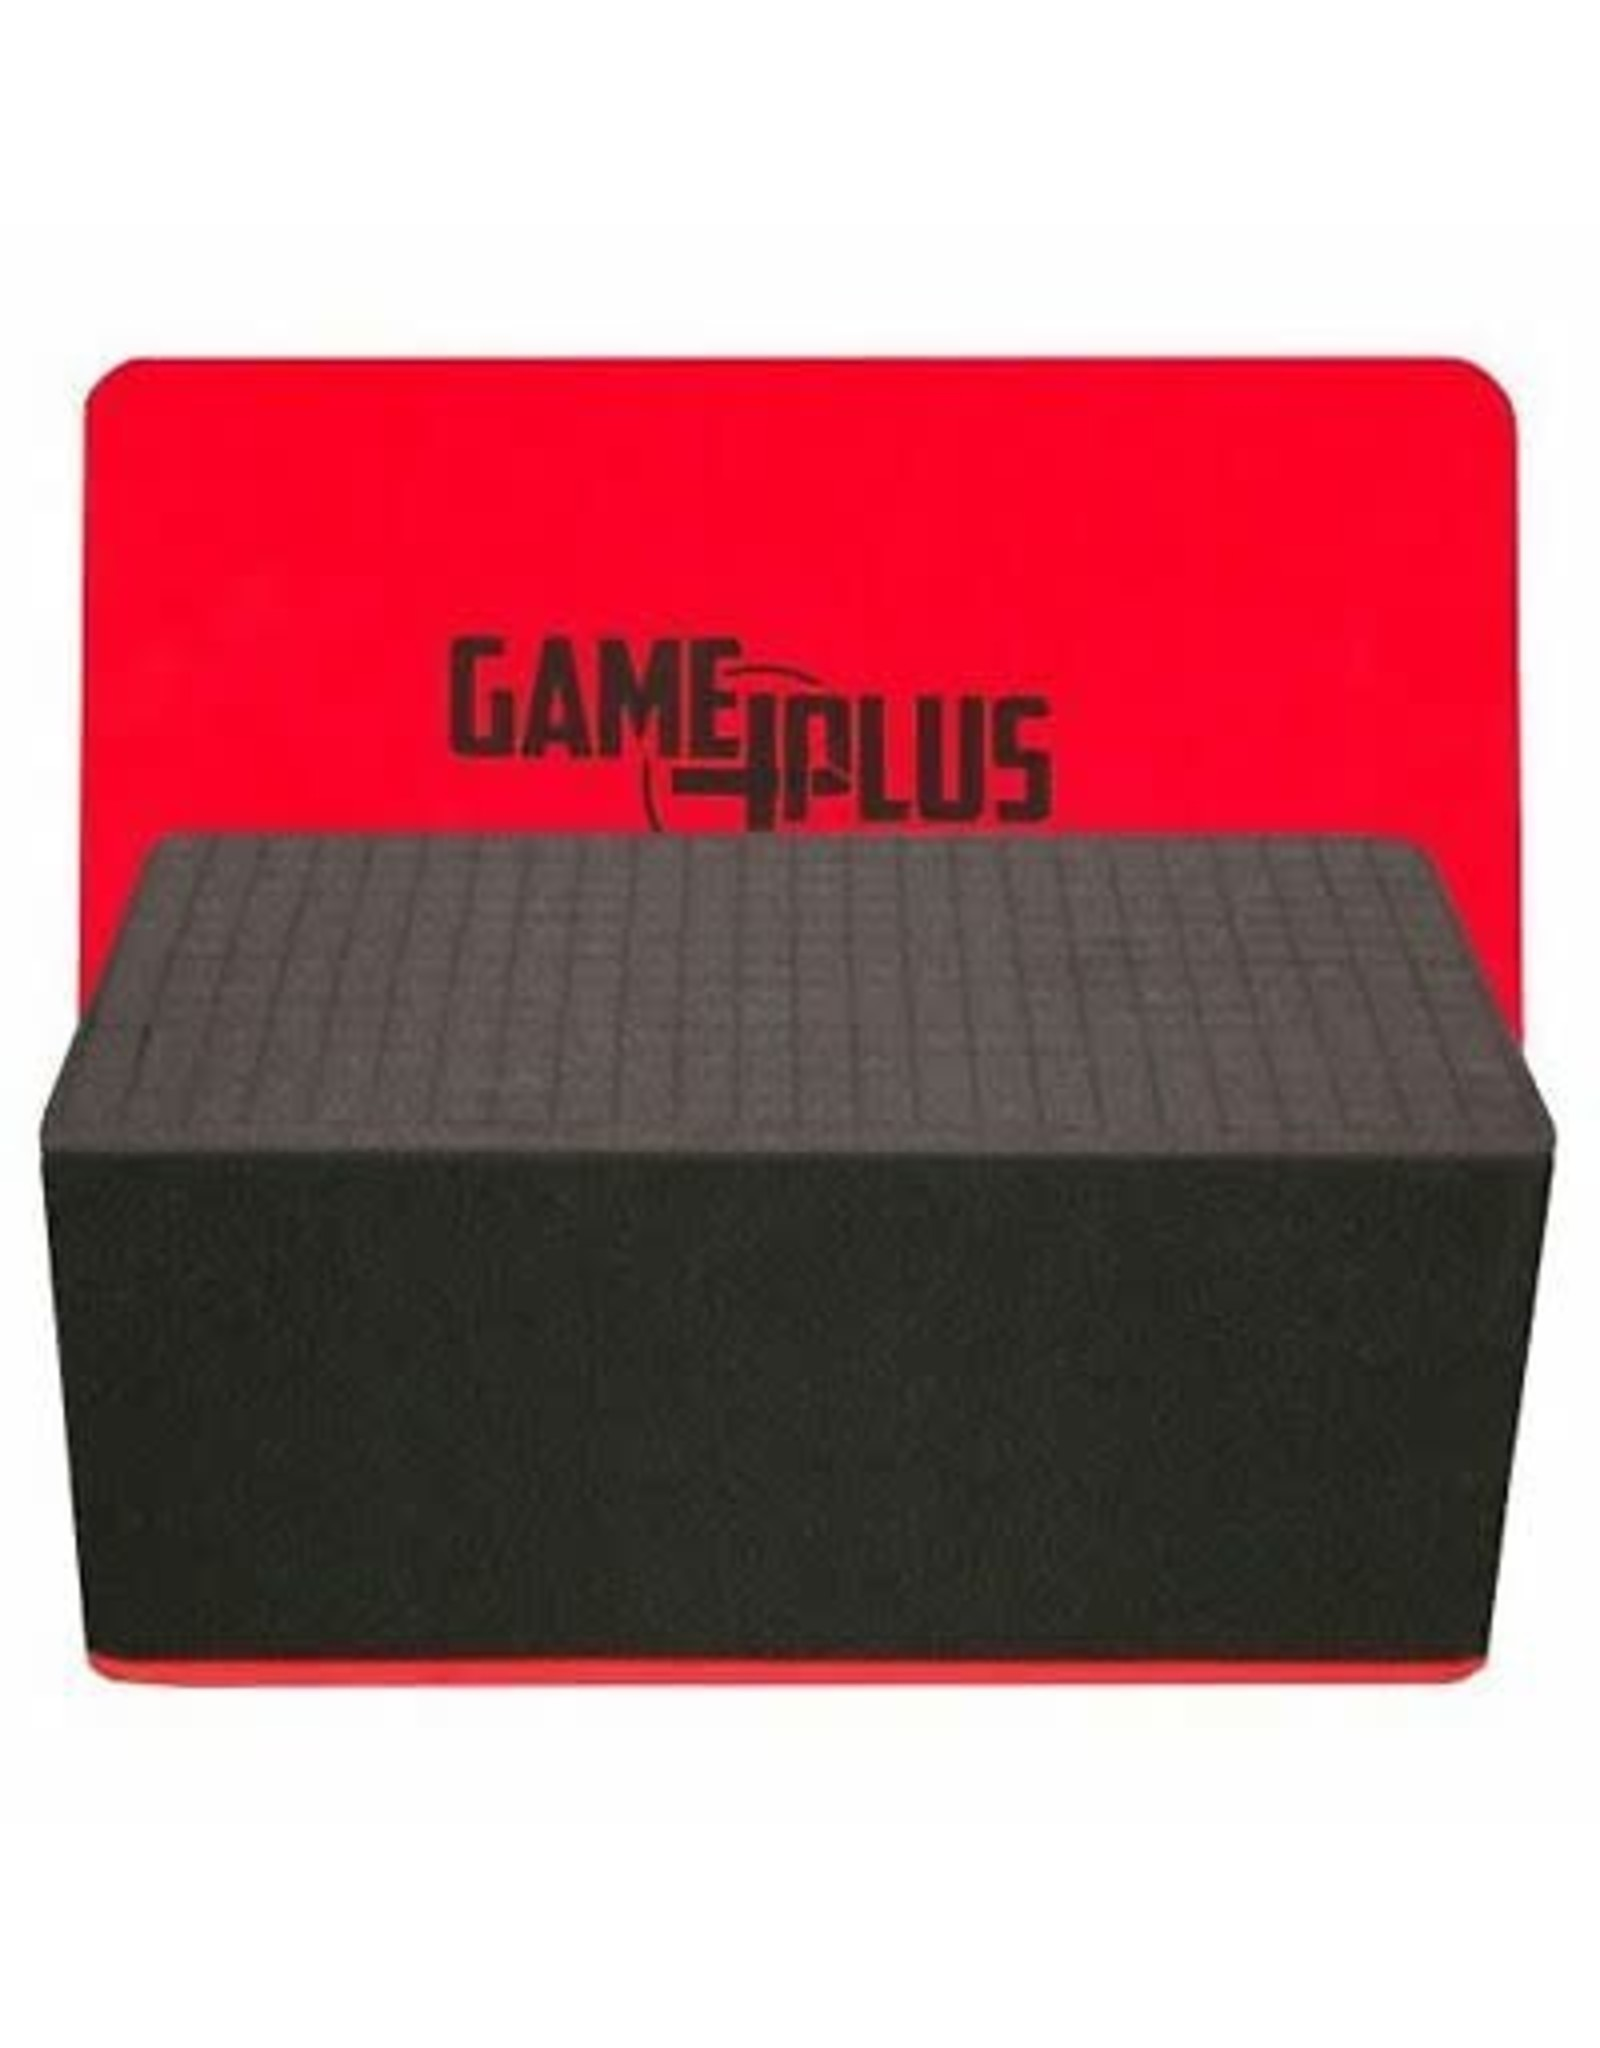 Game plus products 5 inch Pluck Foam